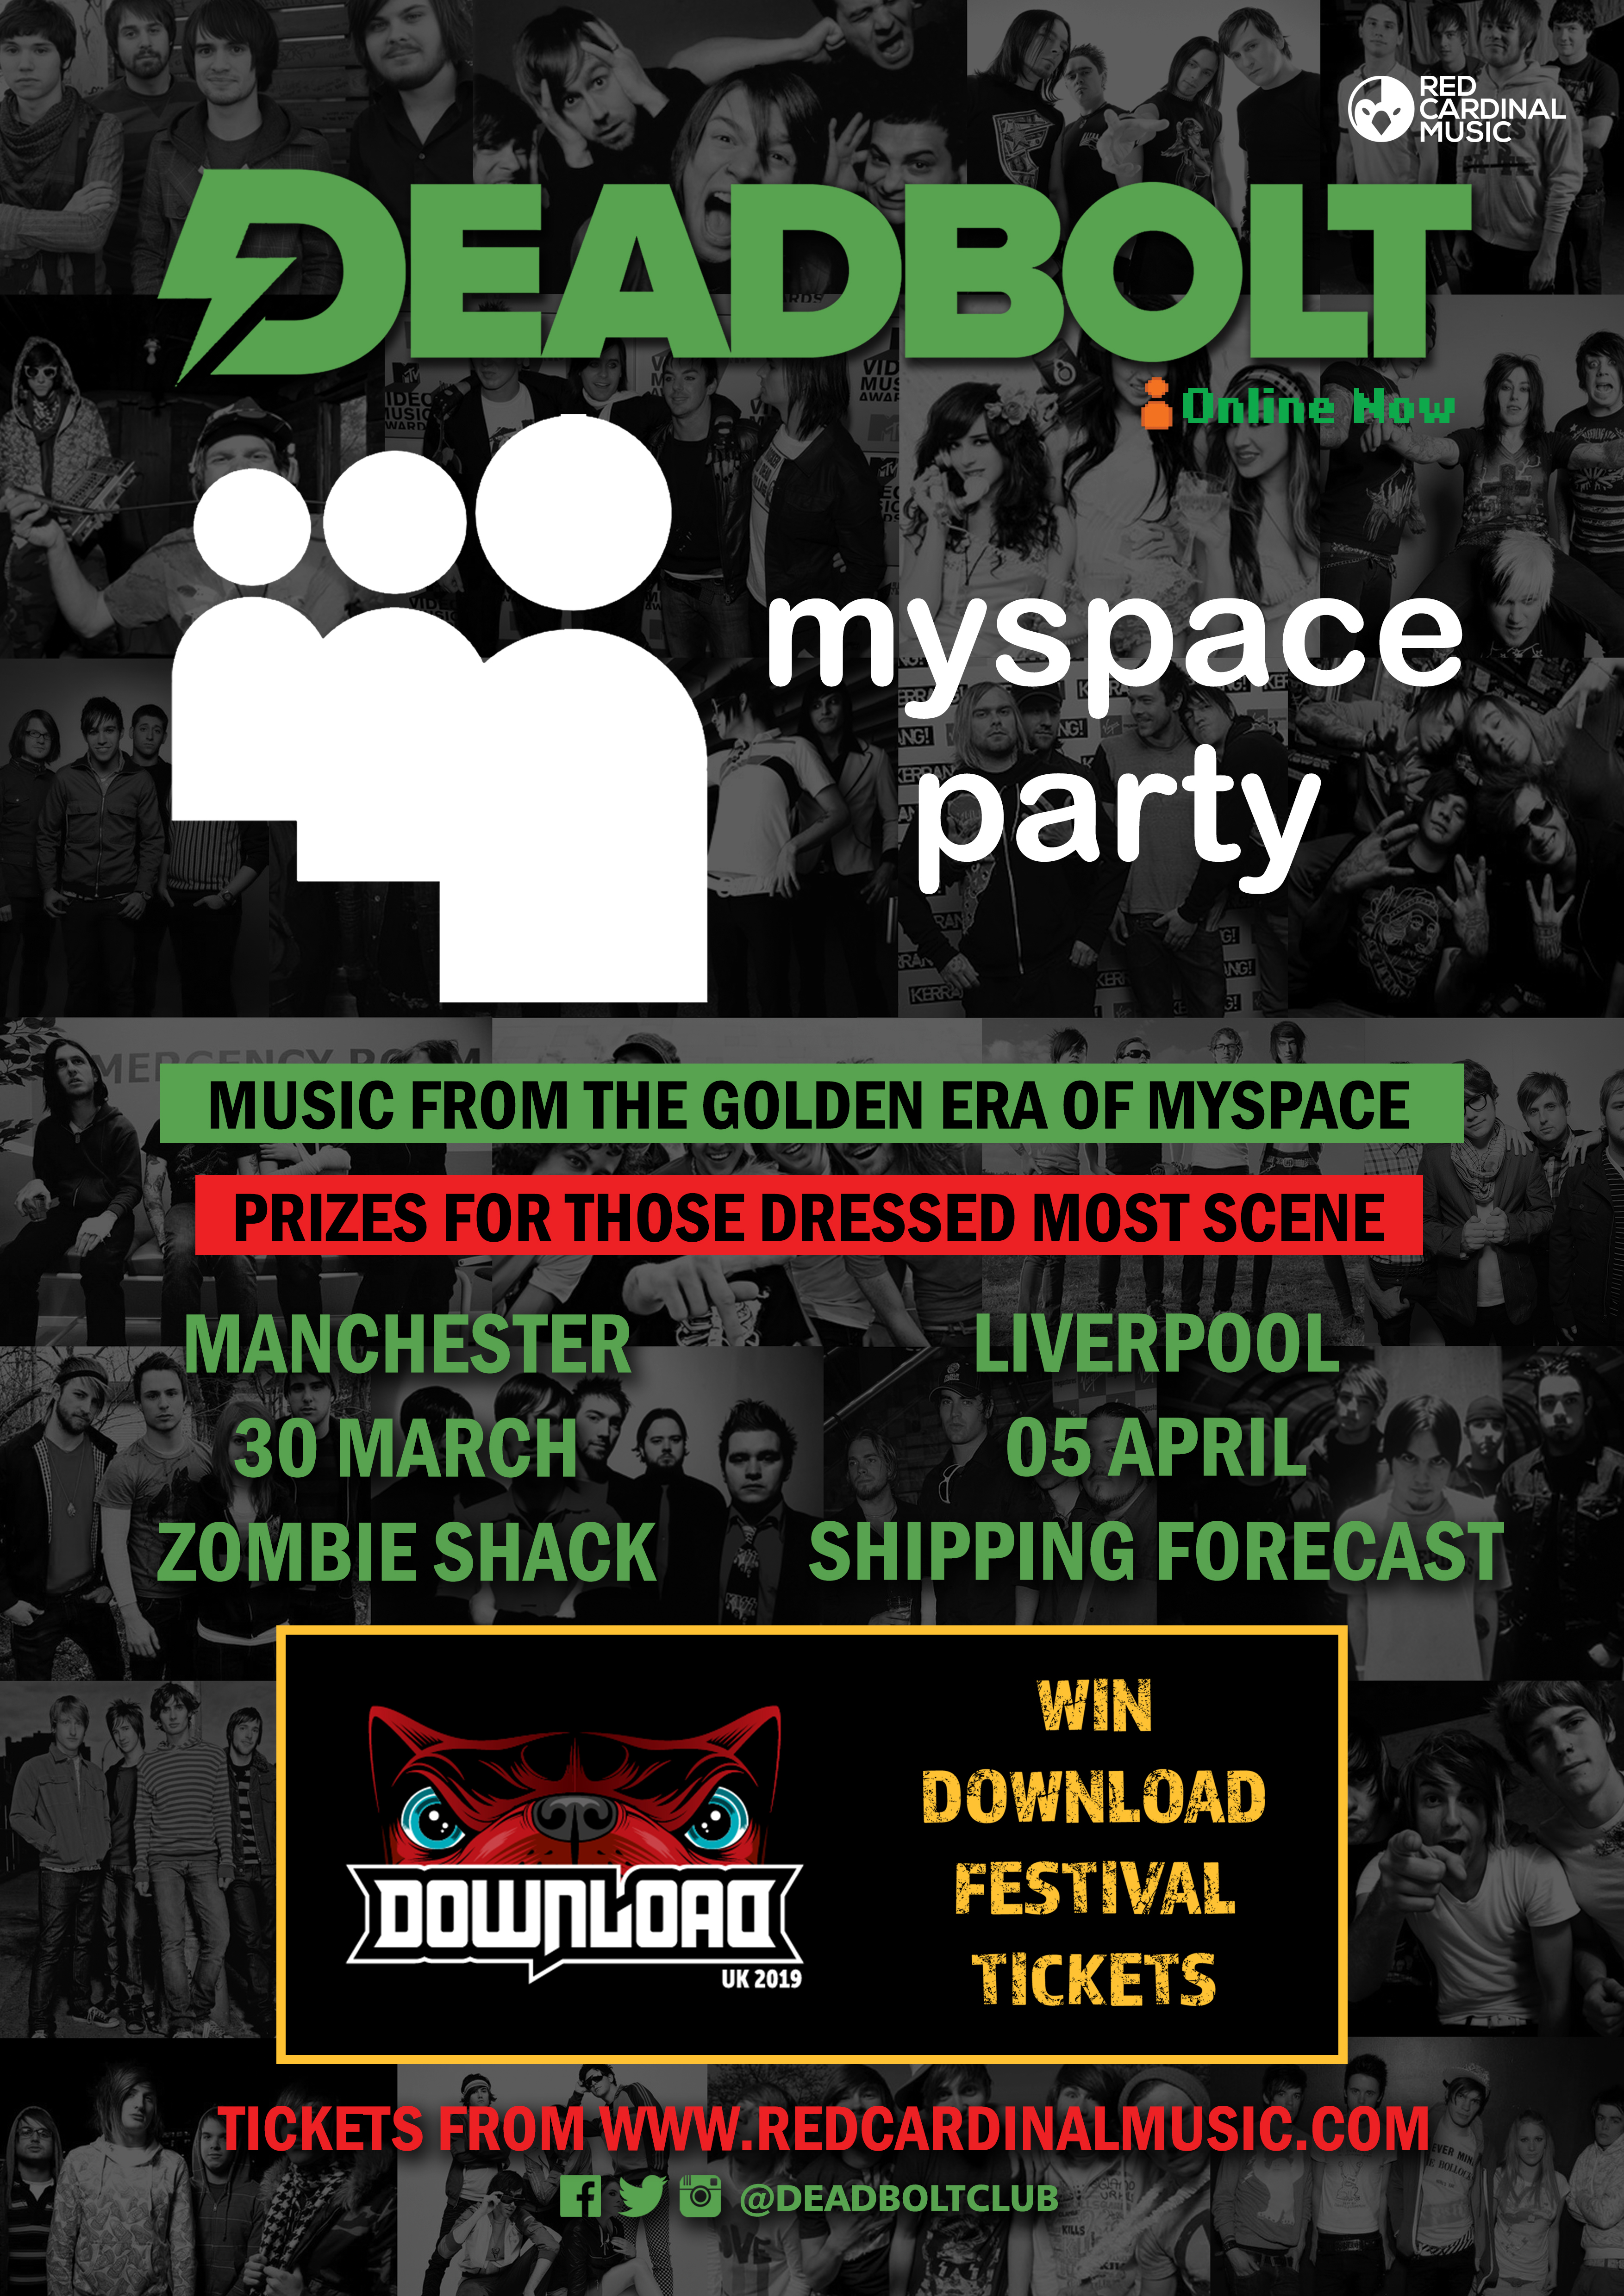 Deadbolt Myspace Party 2019 Manchester & Liverpool Poster - Red Cardinal Music